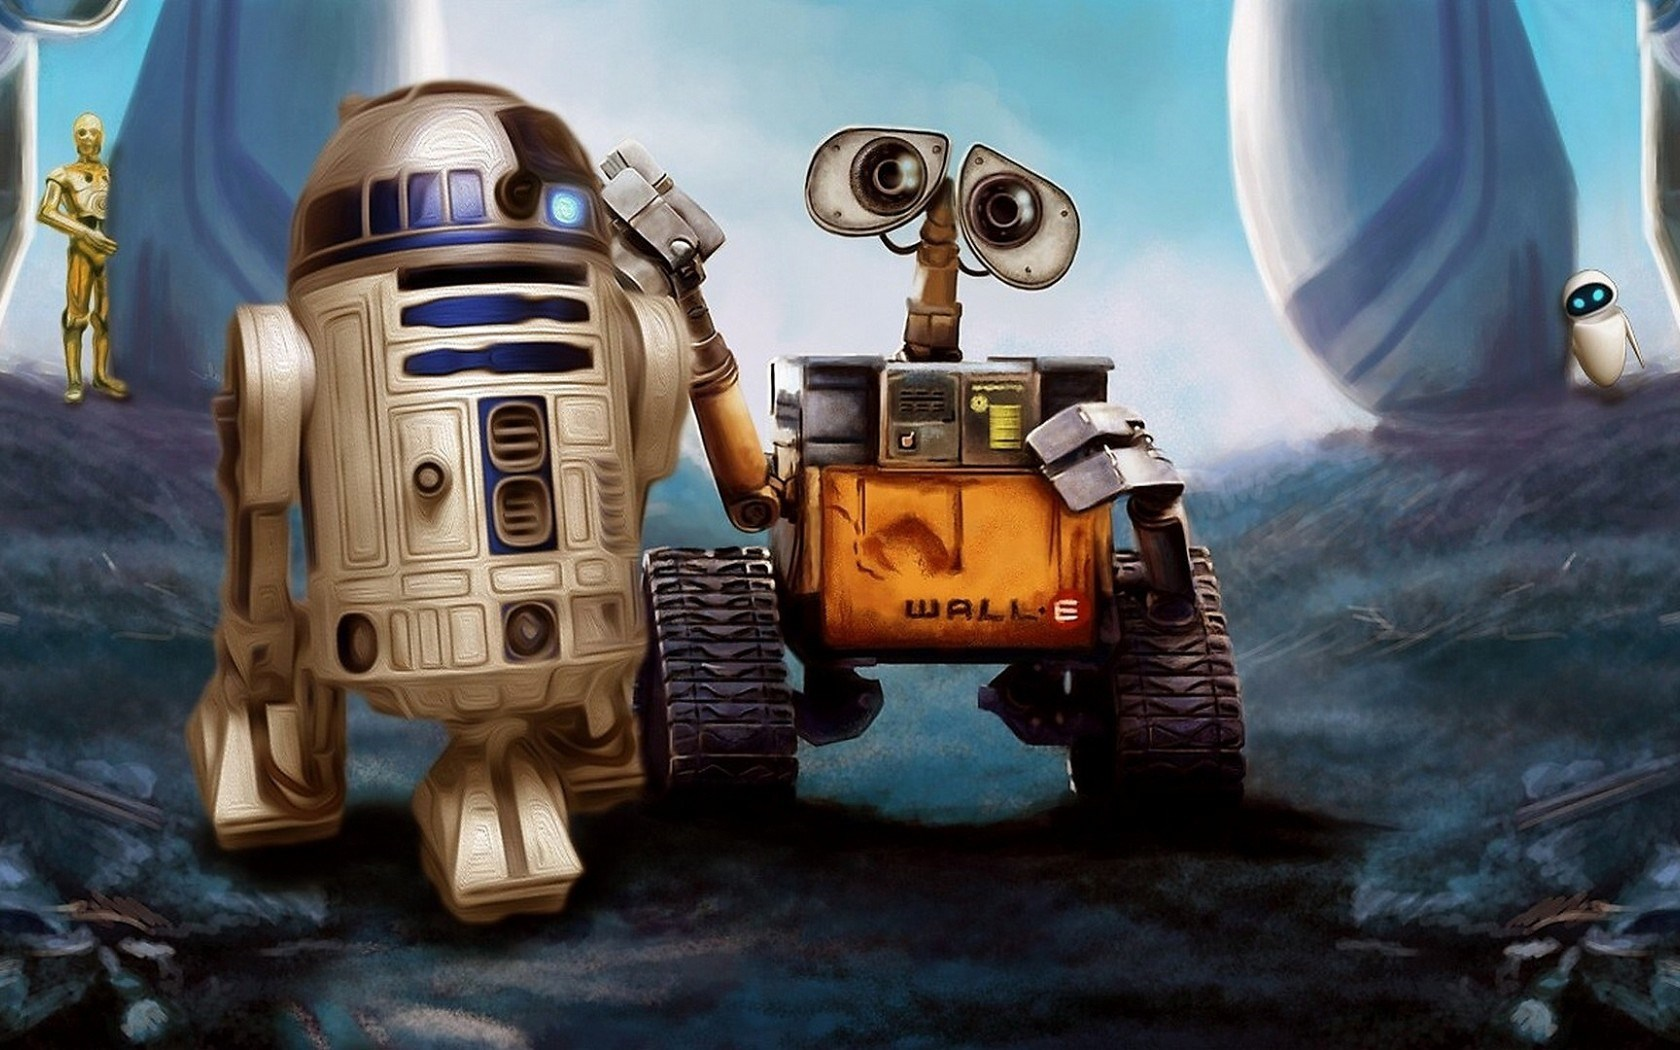 Wall-E R2-D2 Star Wars Robots Cartoon Art